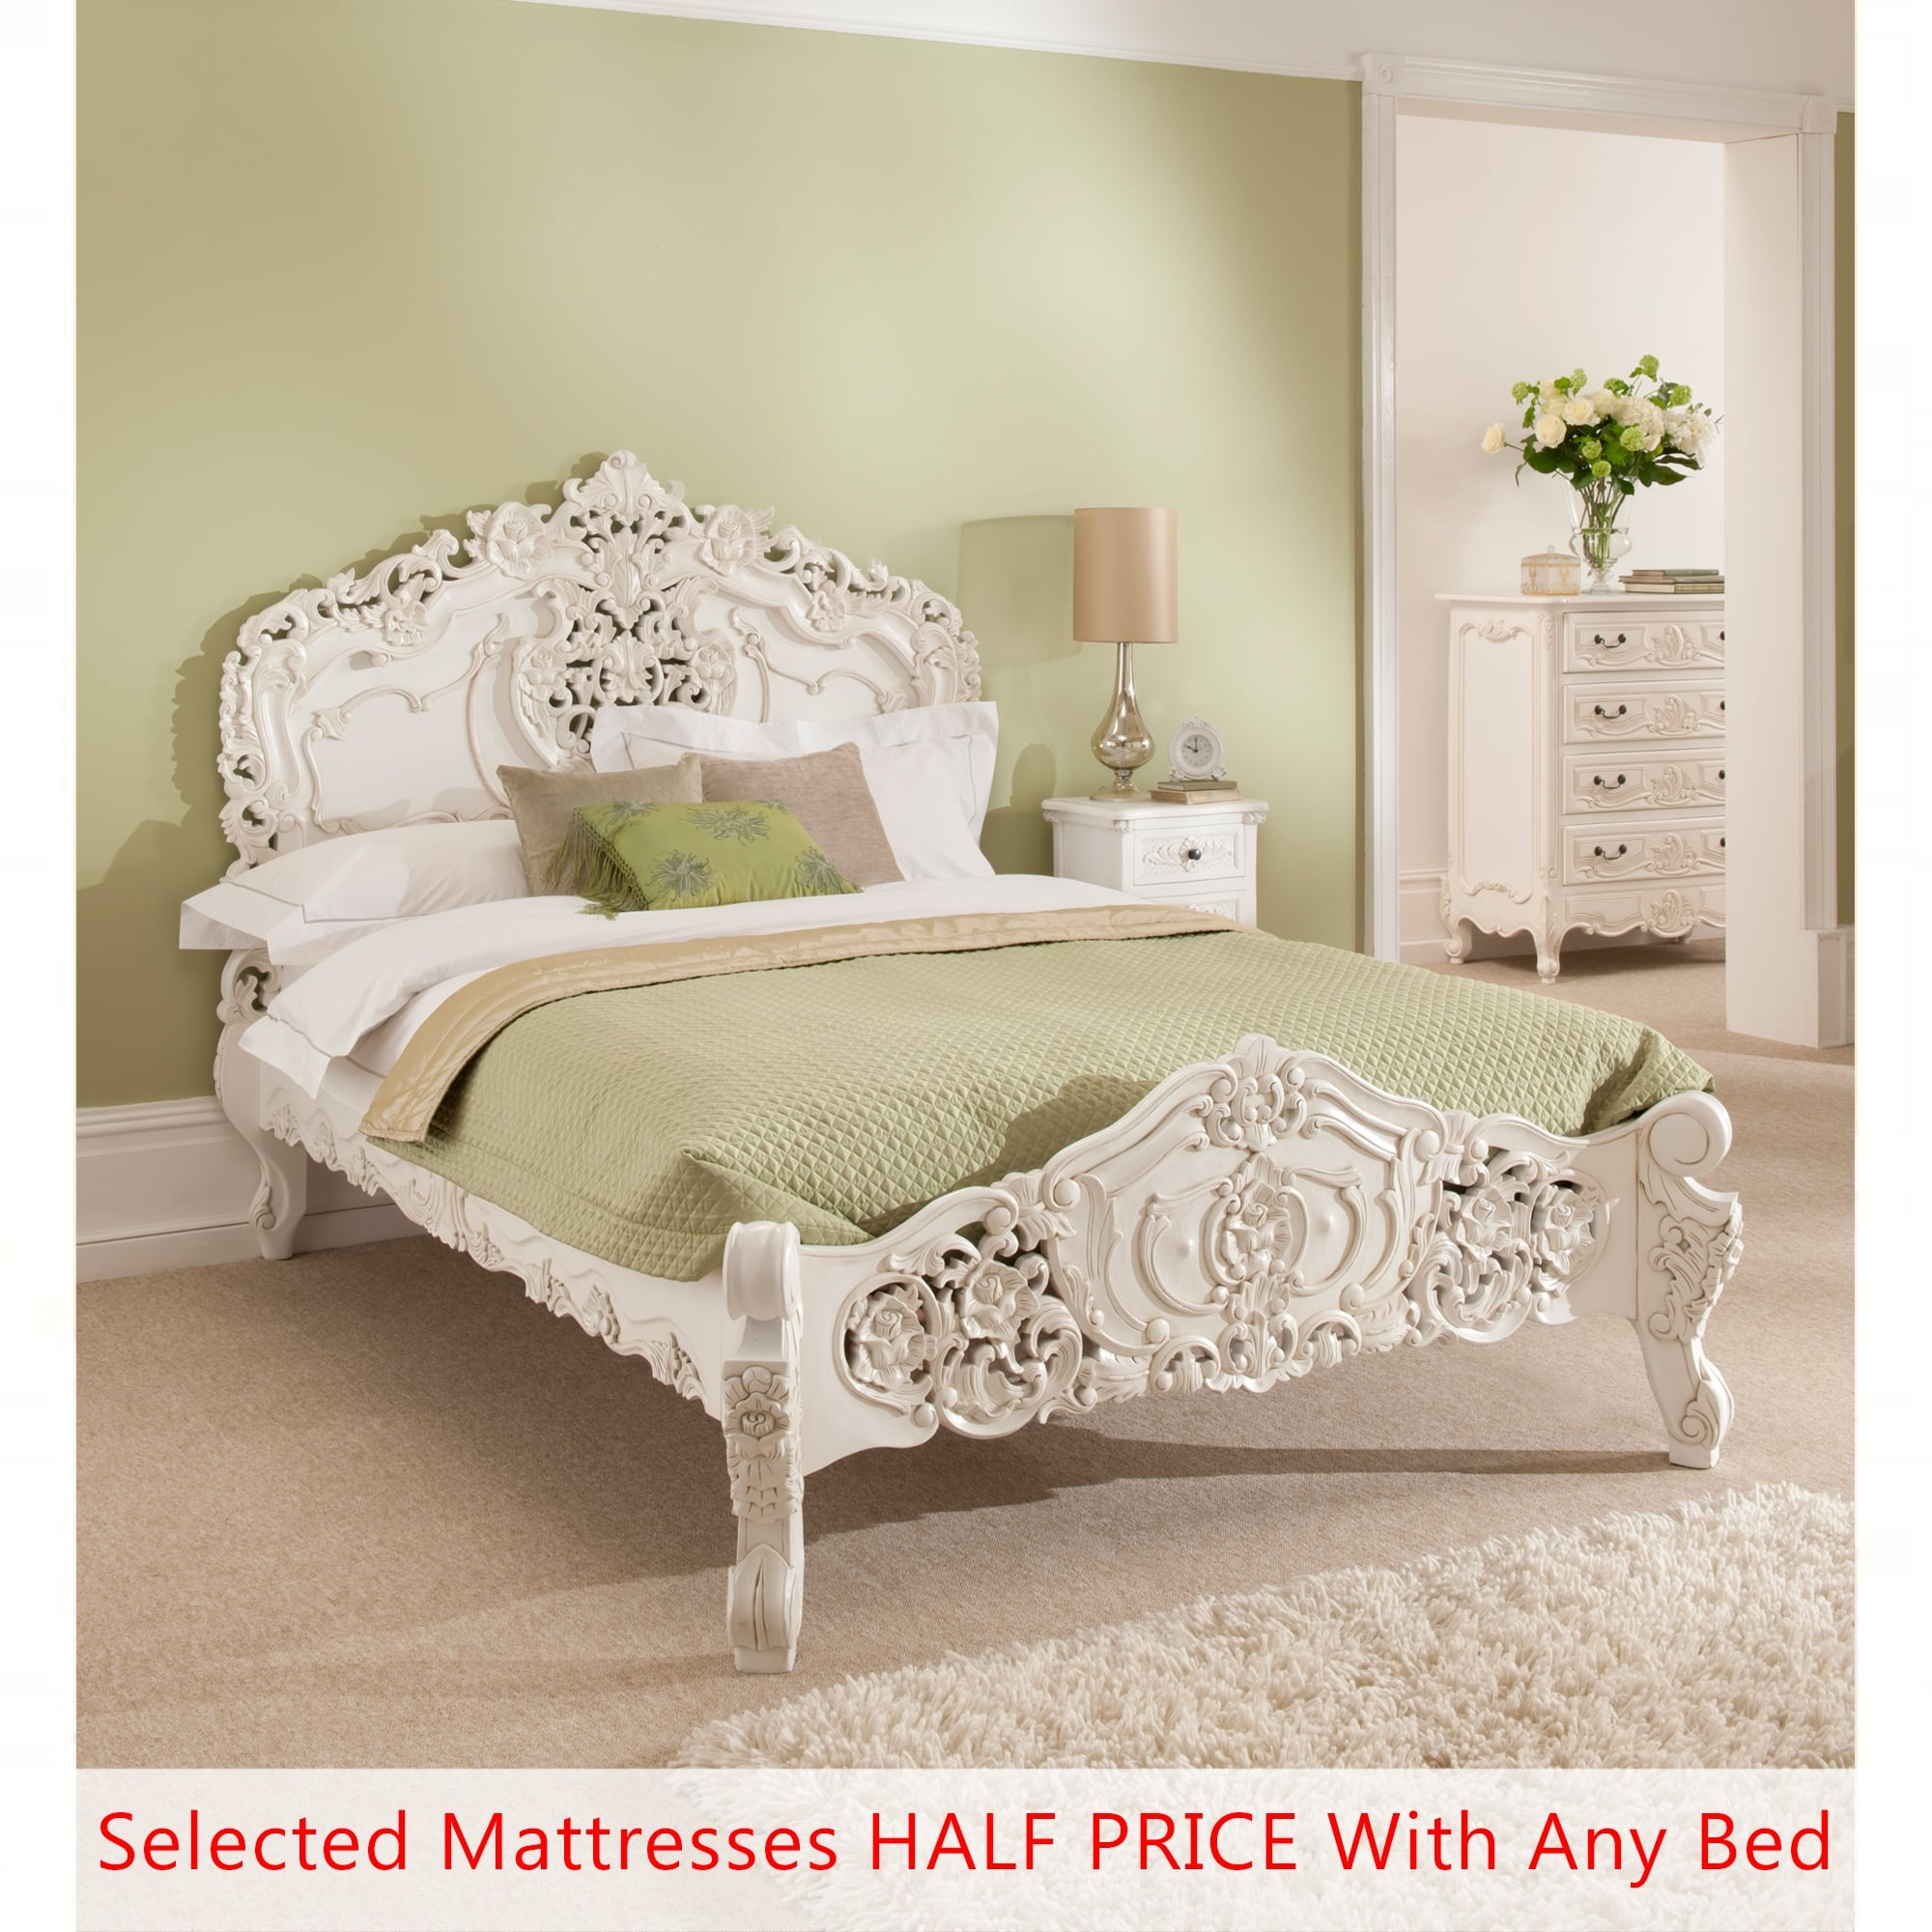 bed just fascinating deals full dimensions and headboards wonderful wyoming frame folding mattress standard casper si hopen size bedroom tufted with king flanigan beds for kitchen stand sale raymour queen photo mattresses best set slay ikea alaskan costco of dreams